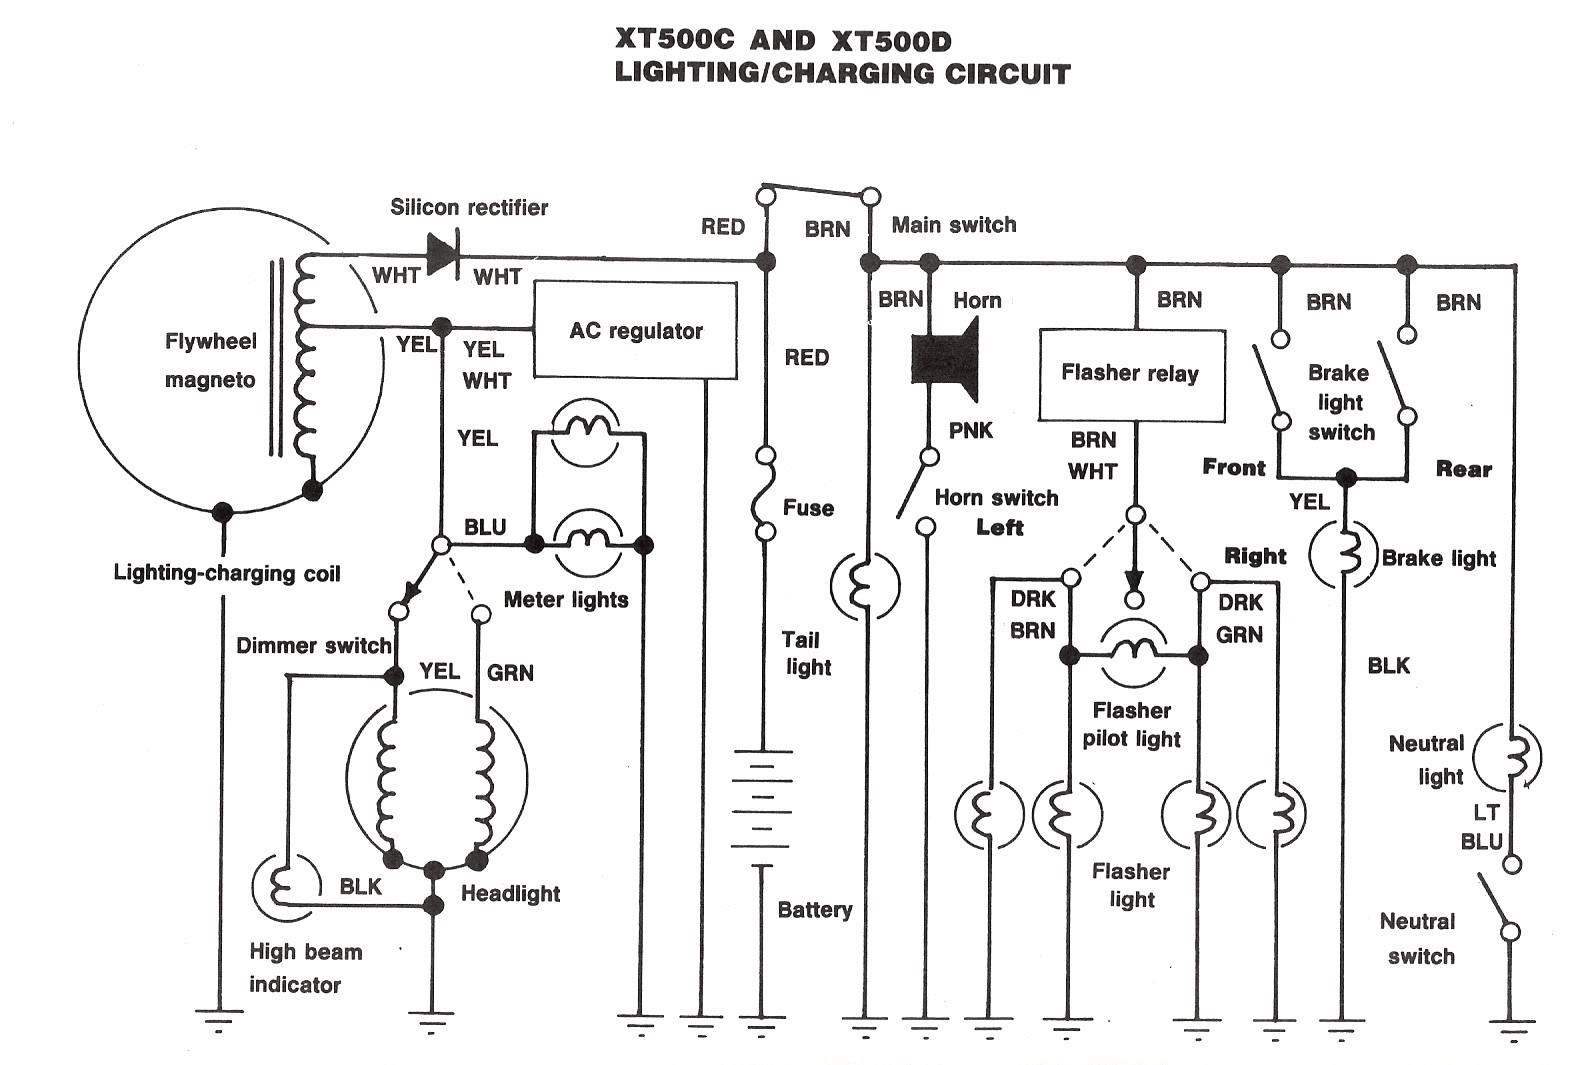 hight resolution of the us xt500 wiring diagram for 1980 and 1981